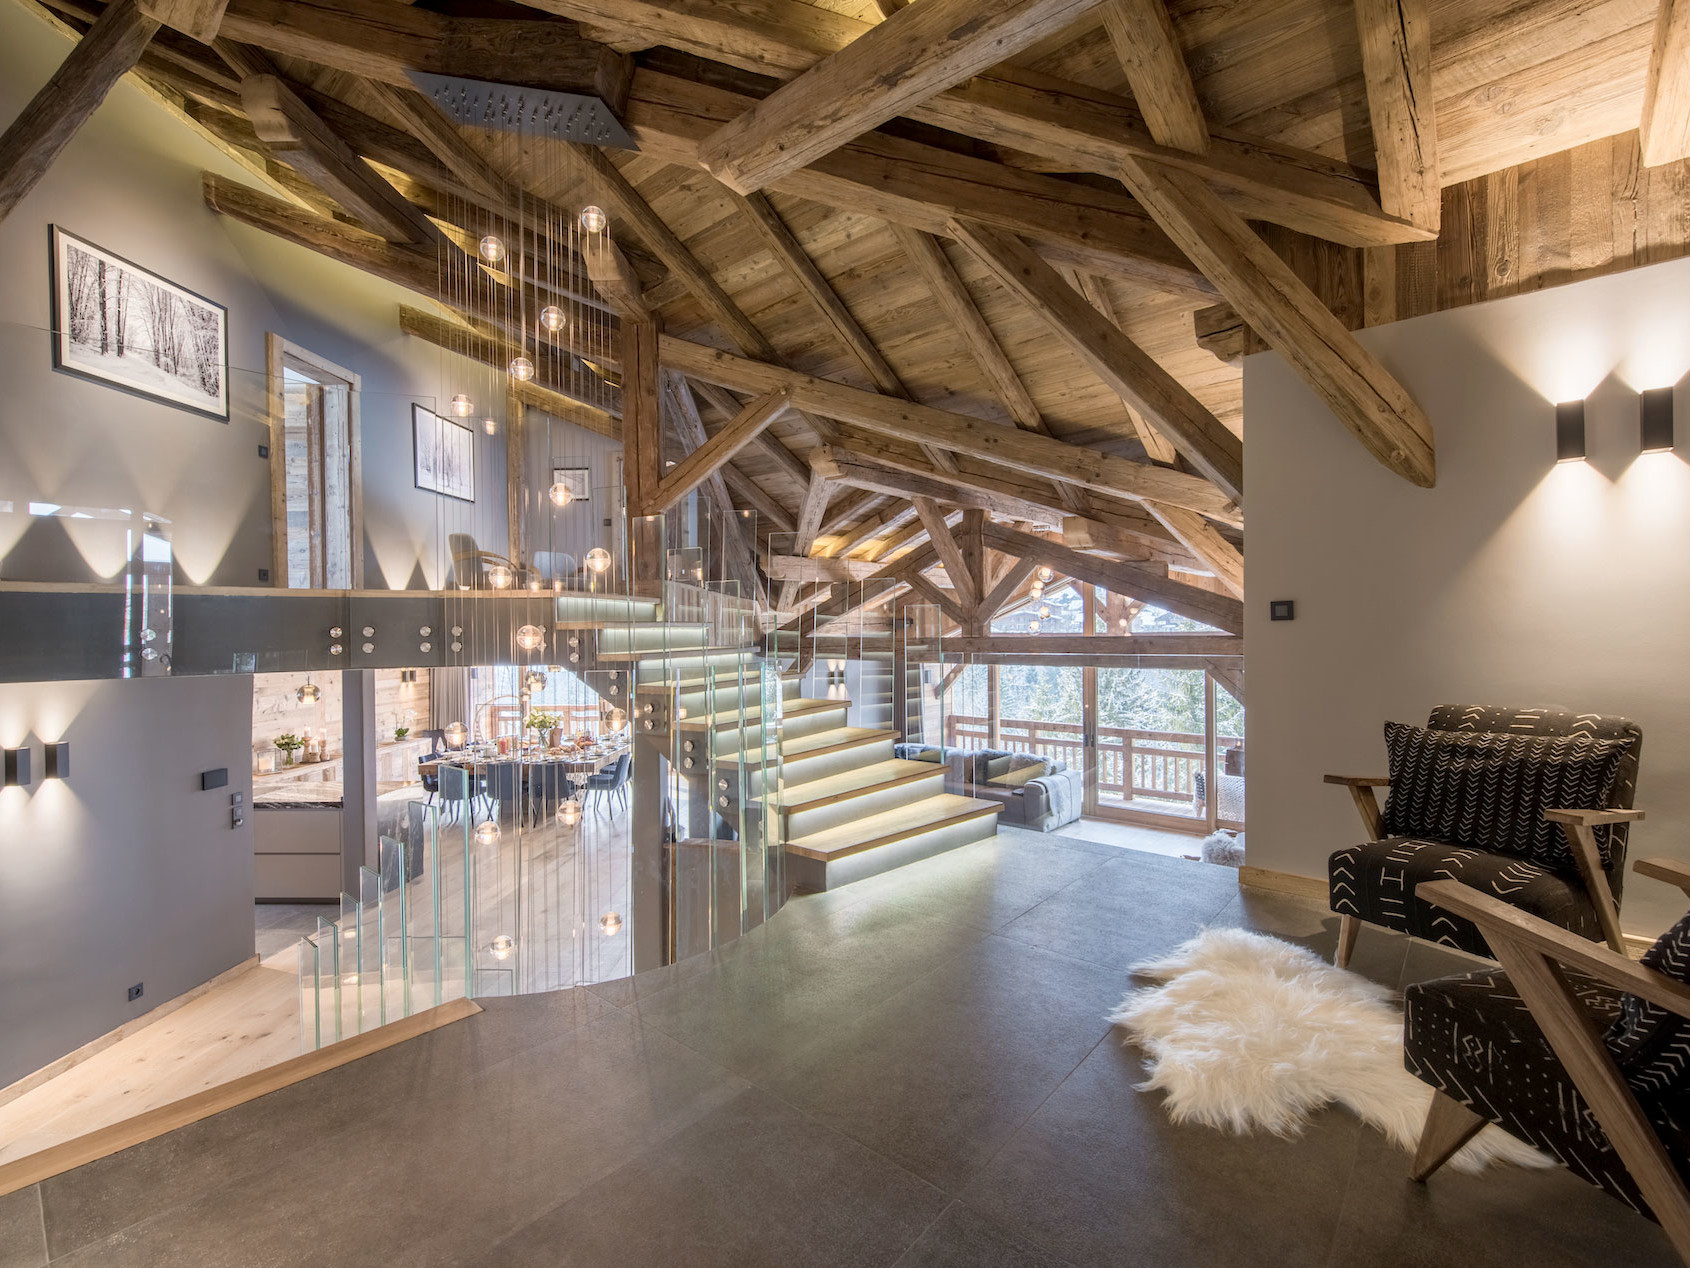 Shep&Kyles – Architectural Design in the French Alps